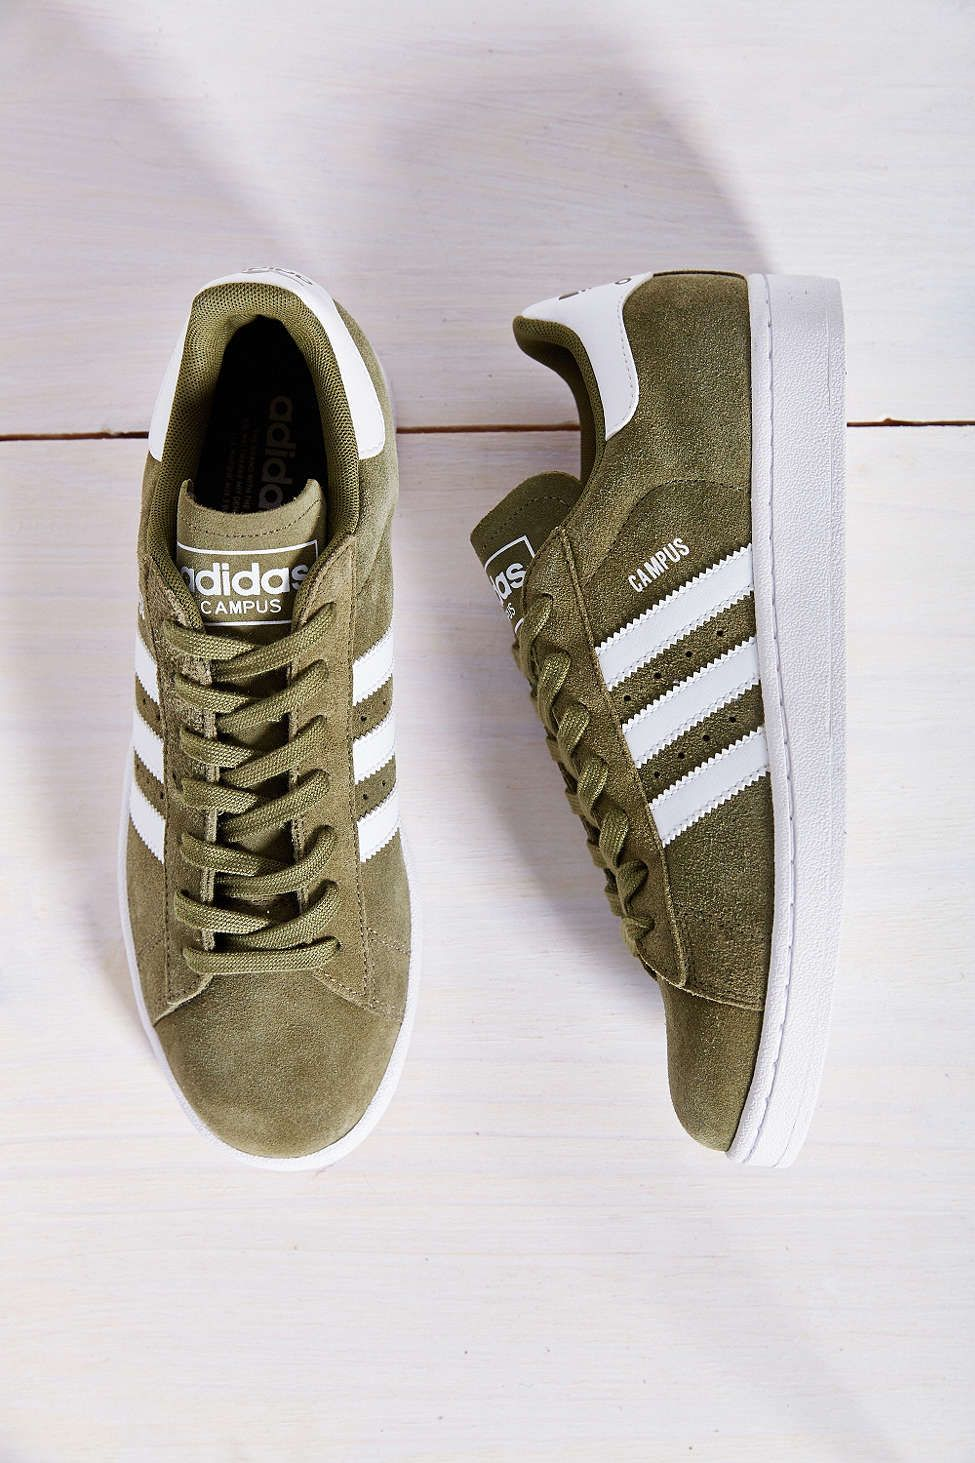 3221aeb2198 adidas Originals Campus 2 Suede Sneaker - Urban Outfitters  70 I do love  the Adidas Campus i have 2 pairs which ive had for years still going  strong...very ...